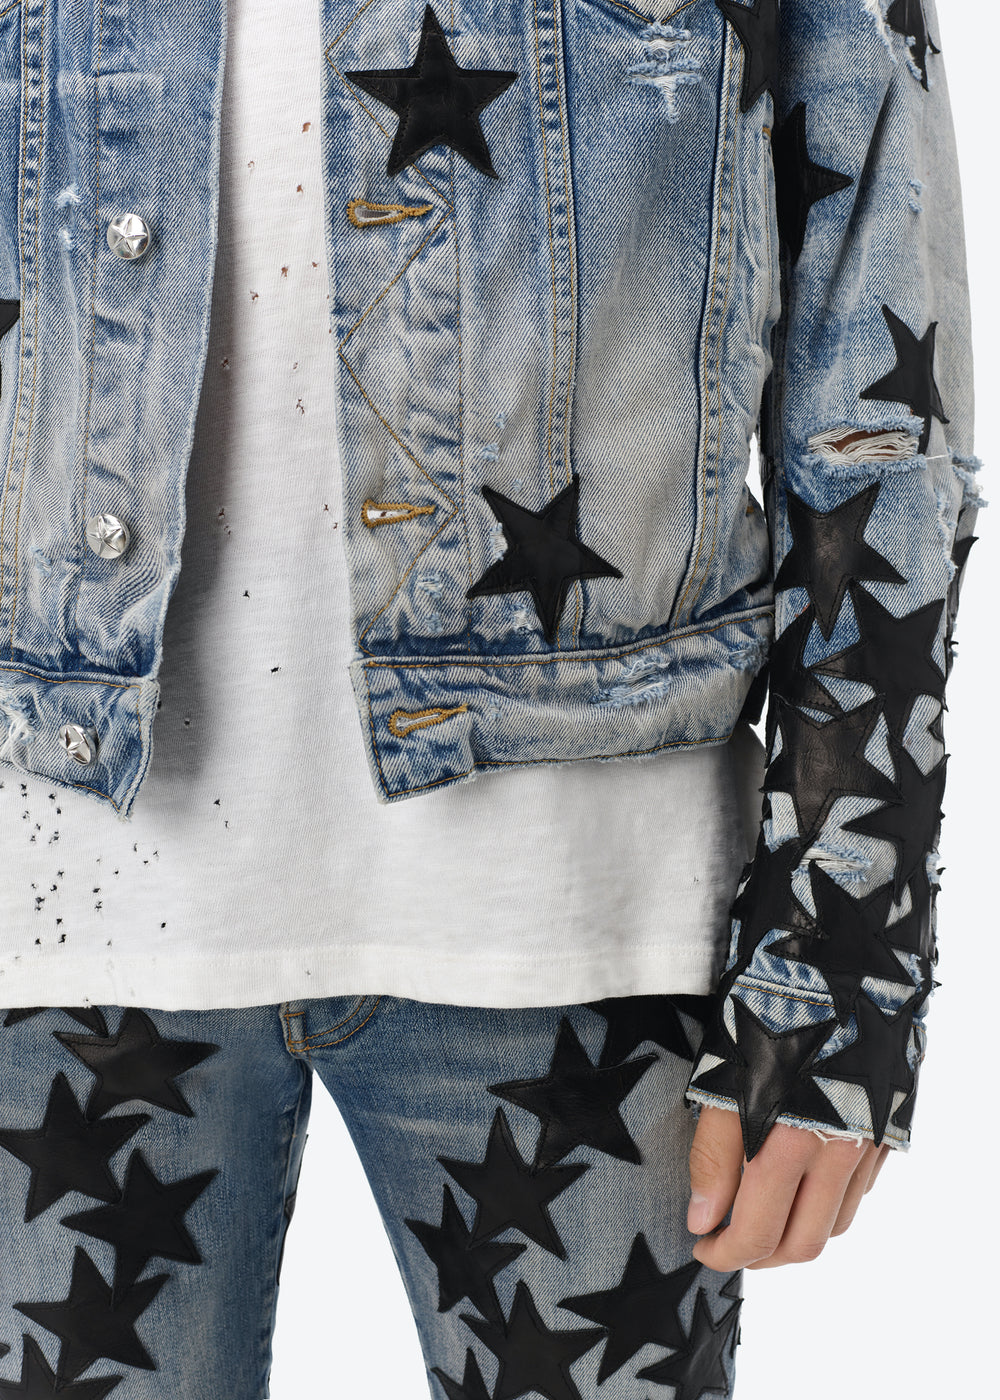 CHEMIST LEATHER STAR TRUCKER - CLAY INDIGO / BLACK